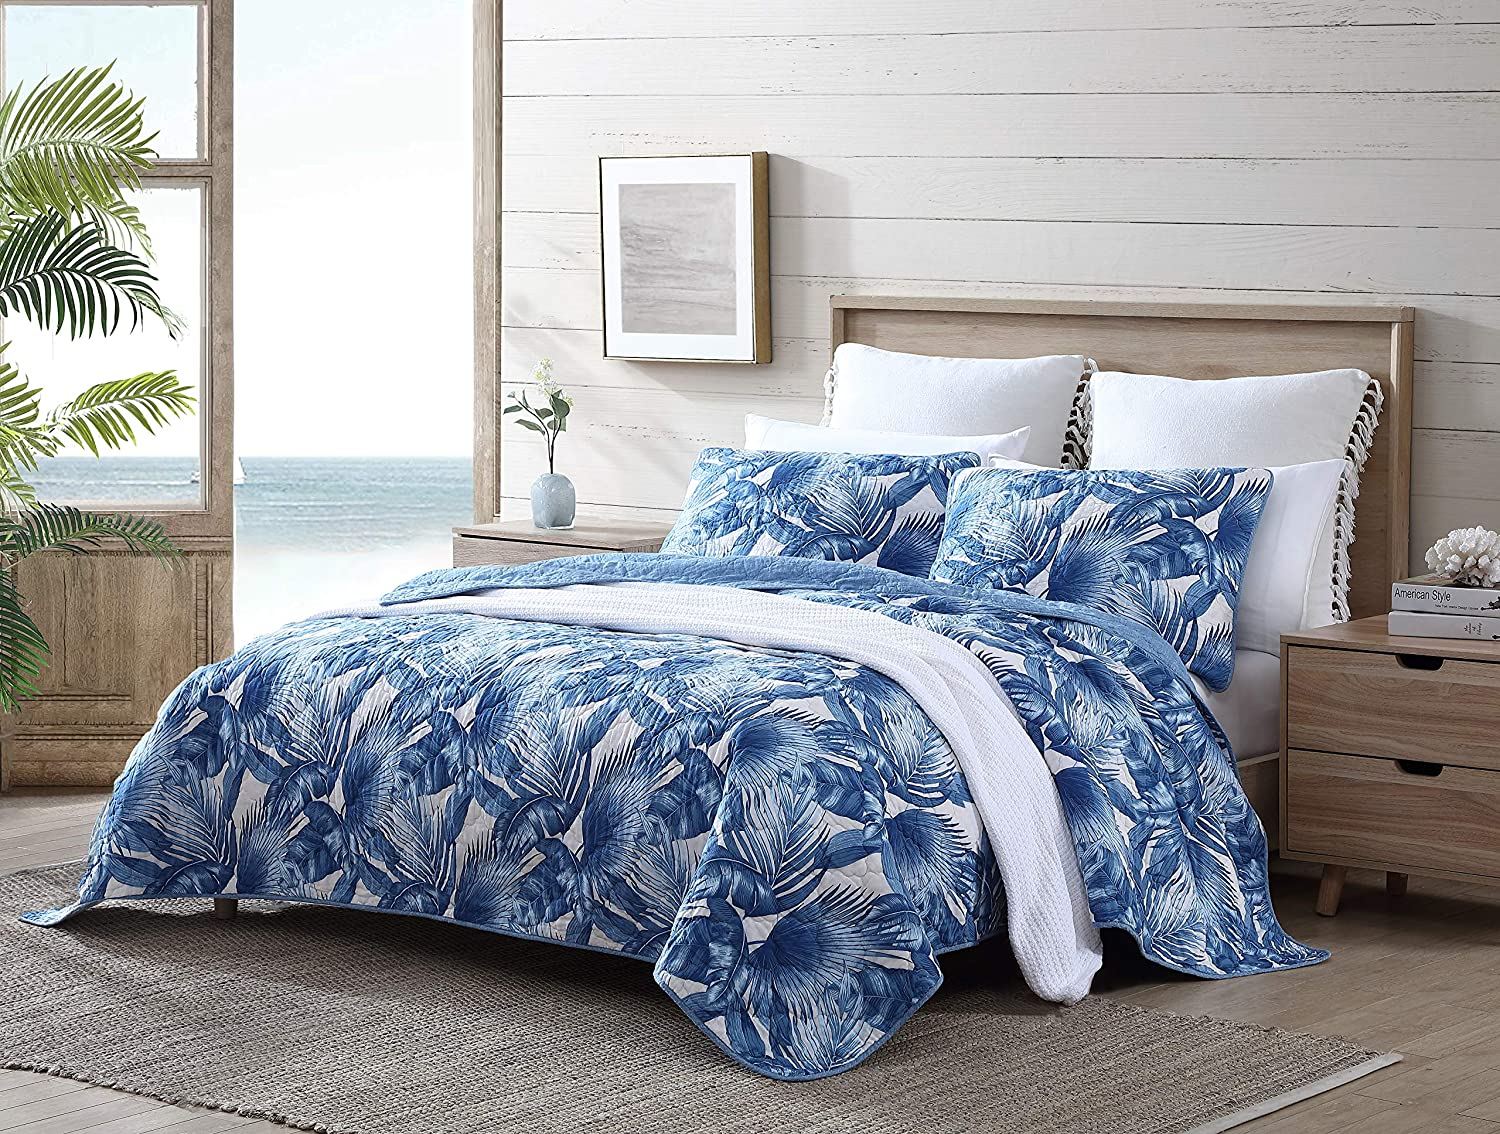 Tommy Bahama | Royal Palm Collection | Quilt Set - 100% Cotton, Reversible, All Season Bedding, Soft & Breathable Fabric with Matching Shams, King, Blue